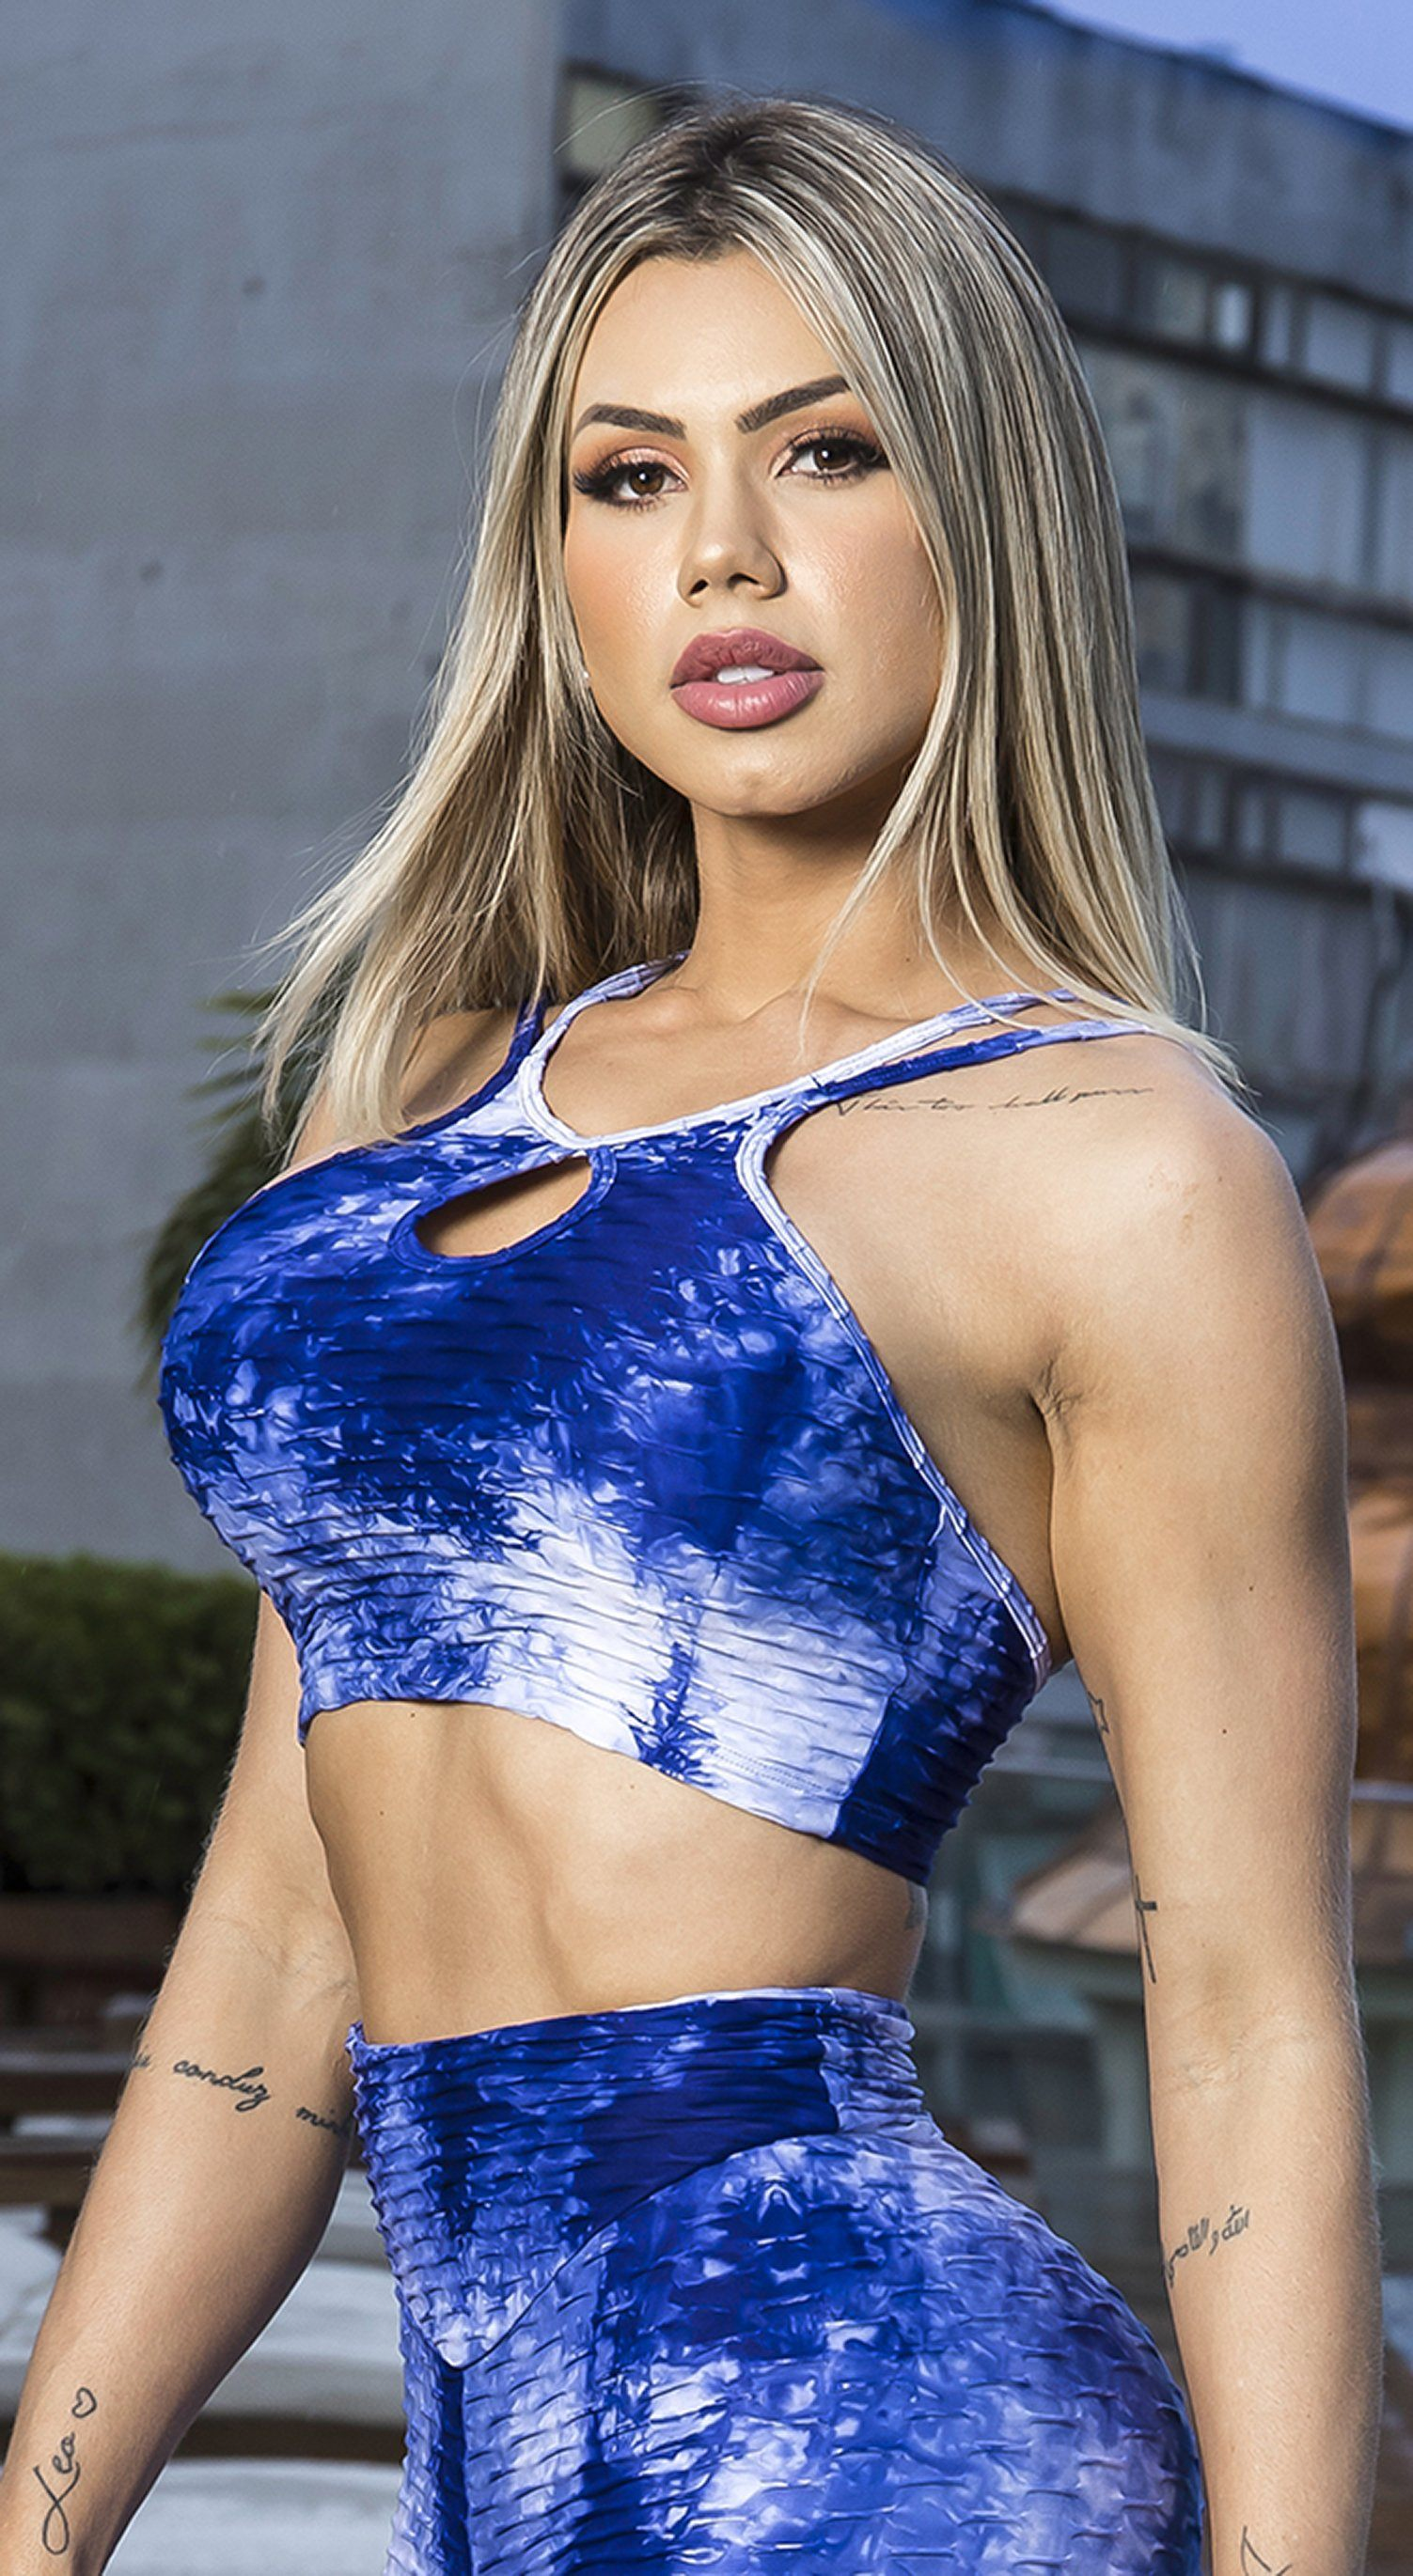 Brazilian Sports Bra - Textured Tie Dye Blue & White